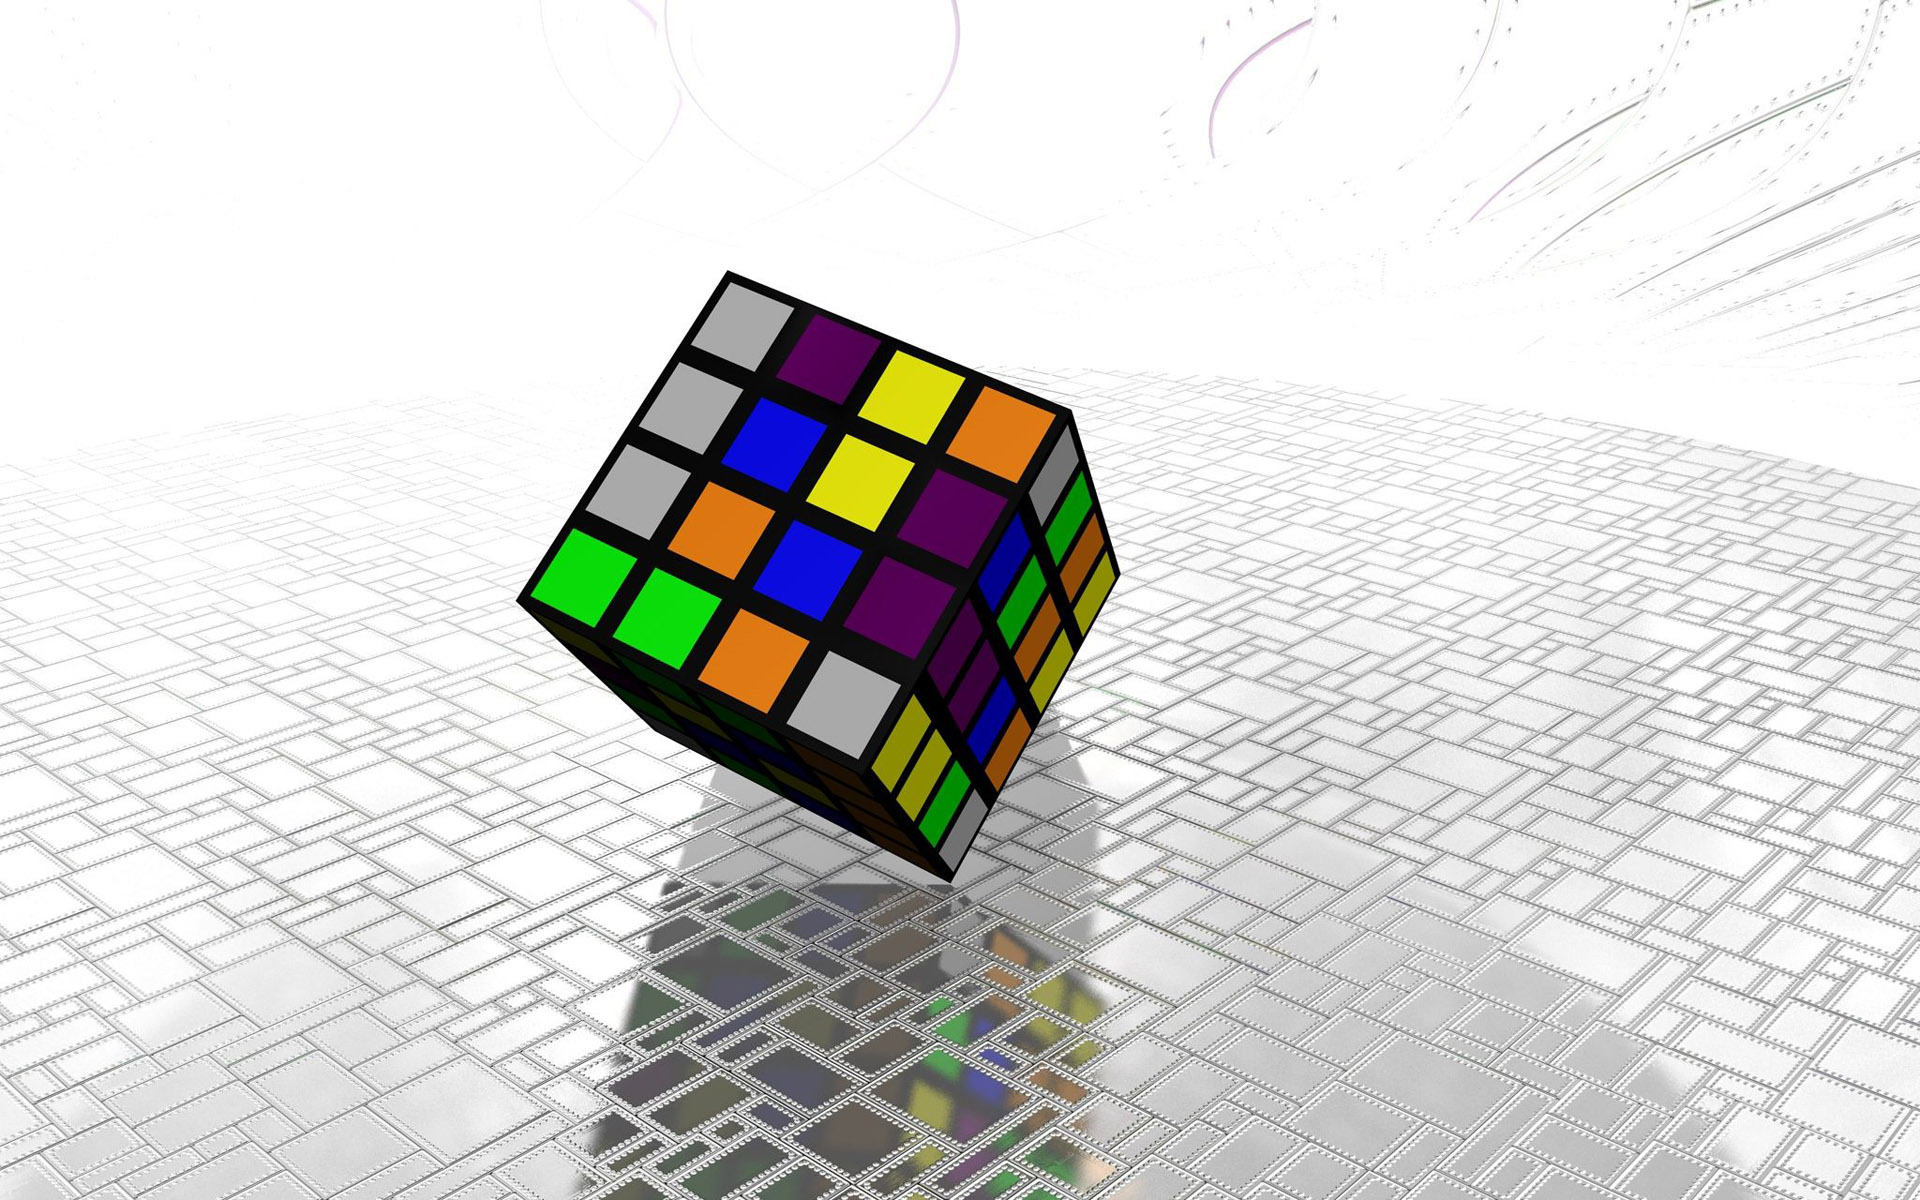 3d Rubiks Cube Wallpaper Related Post Quot Rubiks Cube 3d 1920x1200